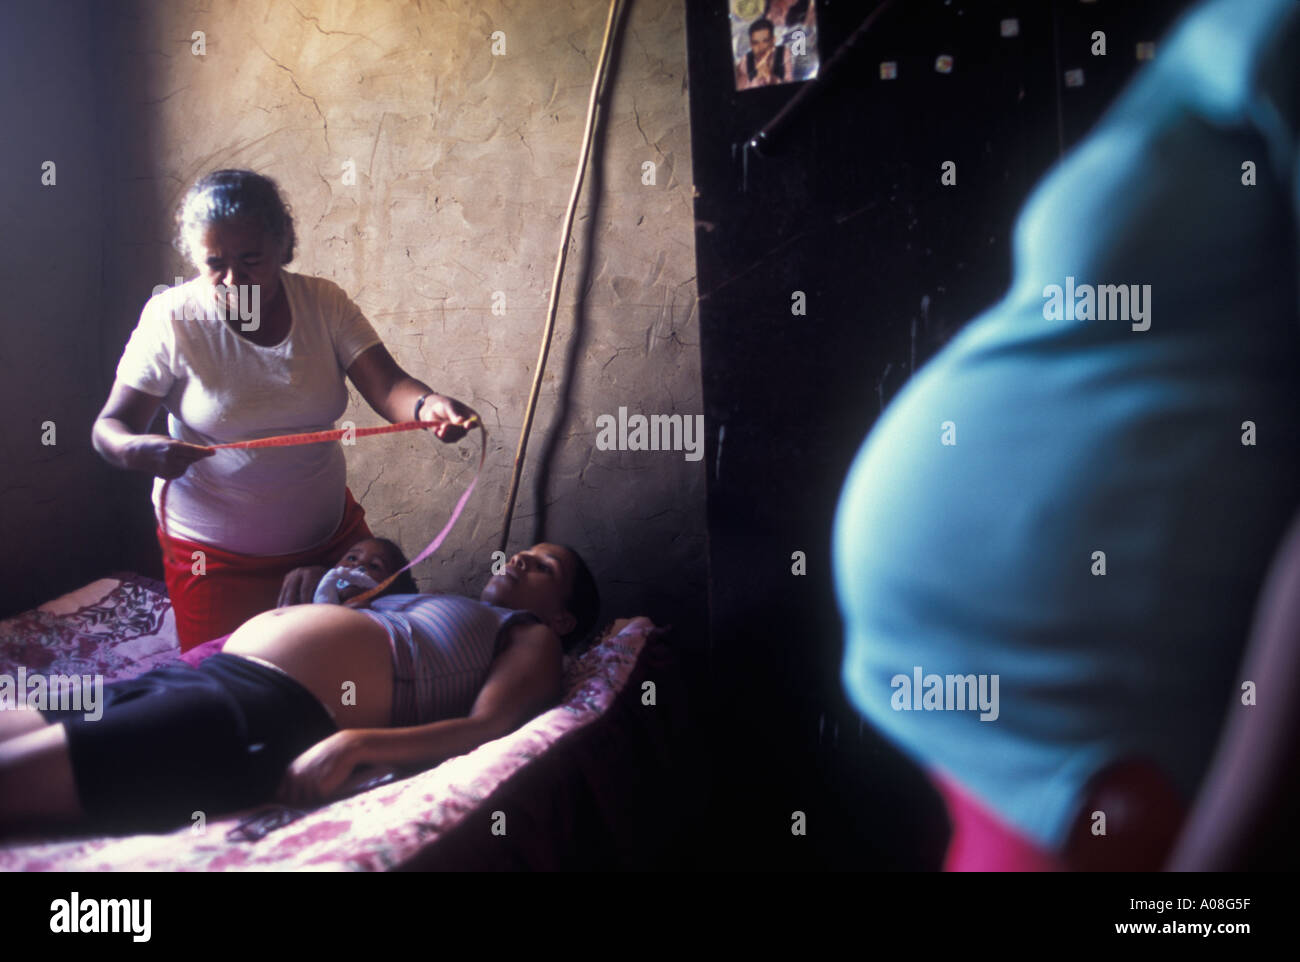 Midwife Edite Maria da Silva take care of one of the pregnant women who lives in her community Previous to birth exams held at - Stock Image